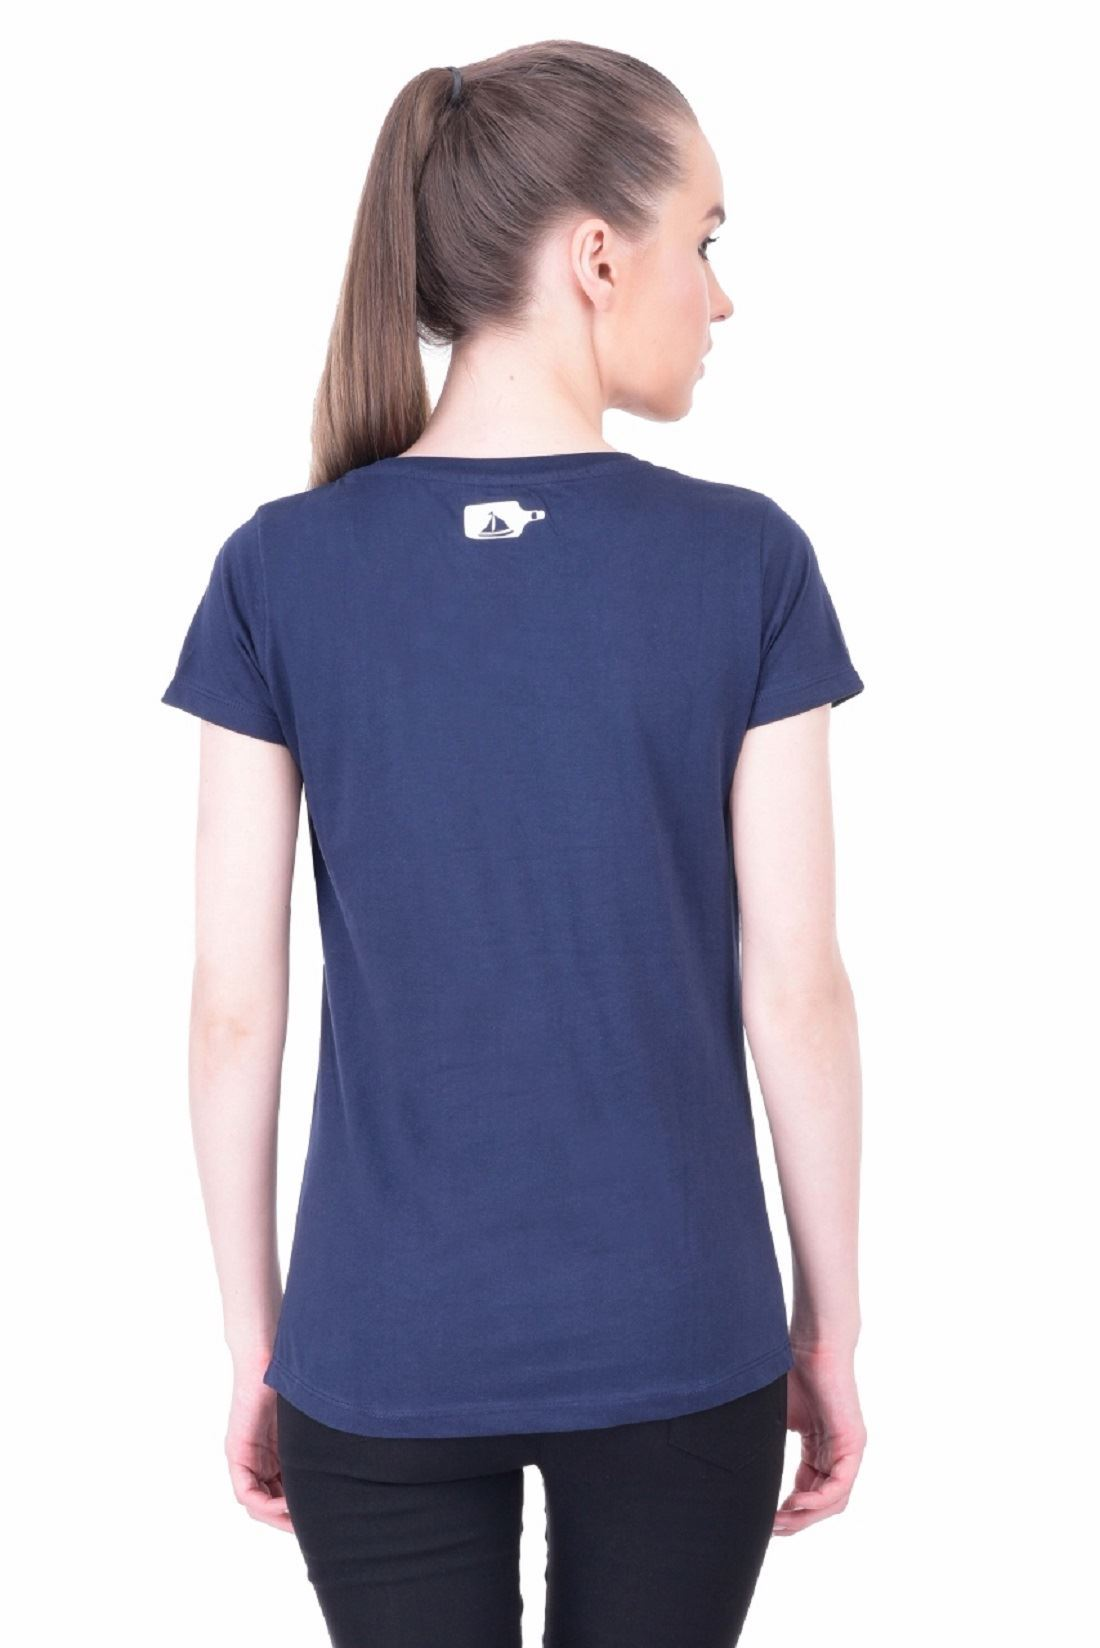 b88e625761ee ... Picture of The Dry State Women's Half Sleeve Cotton T-Shirt(HS05160025-$  ...